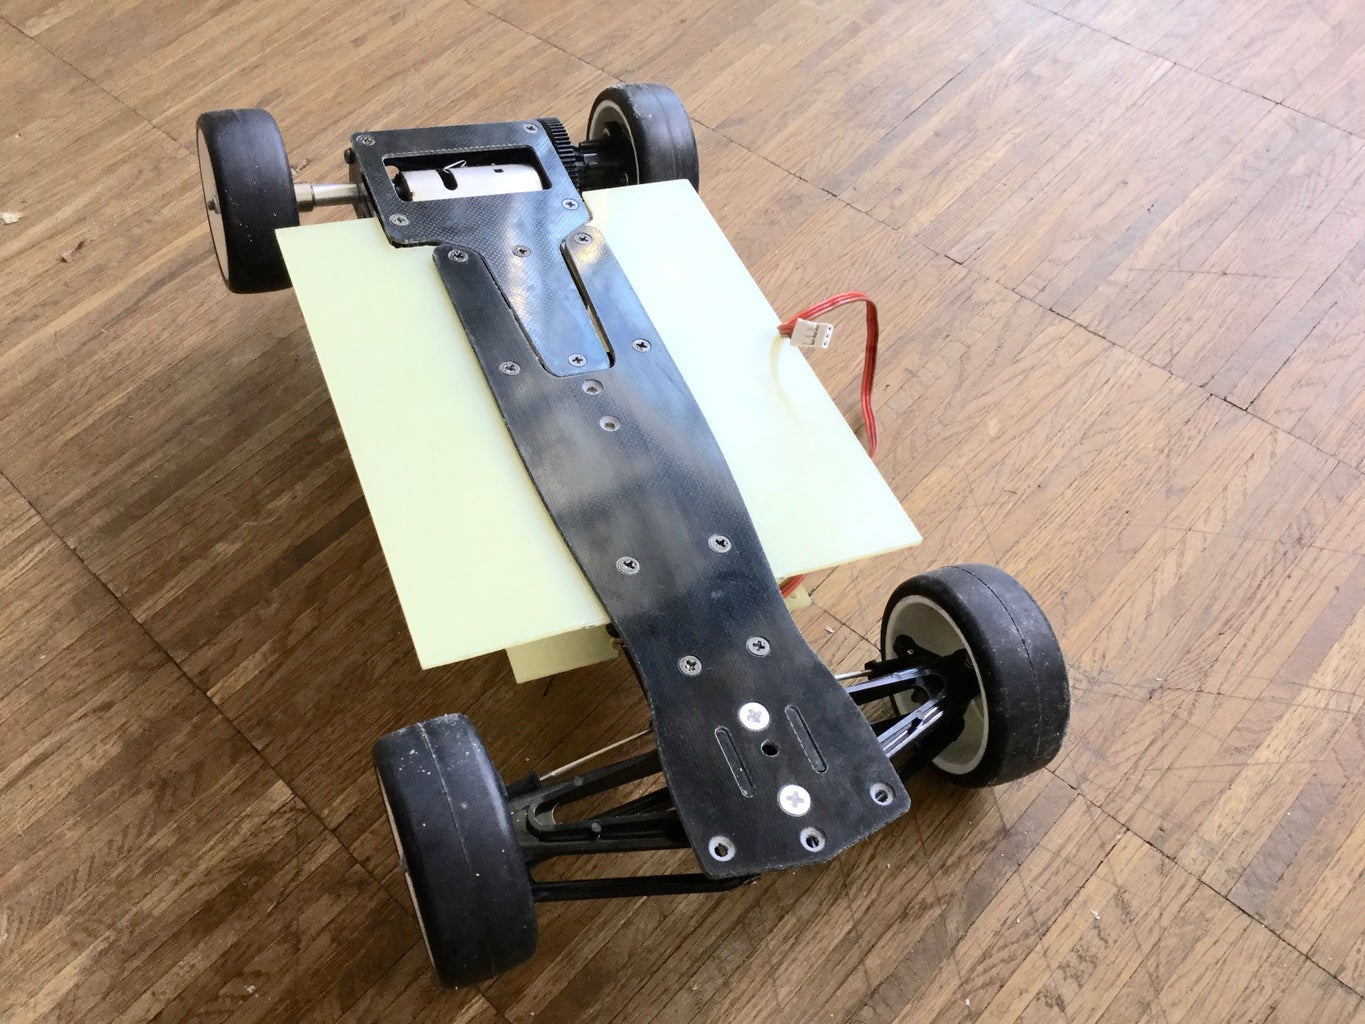 EXTENDING THE CHASSIS